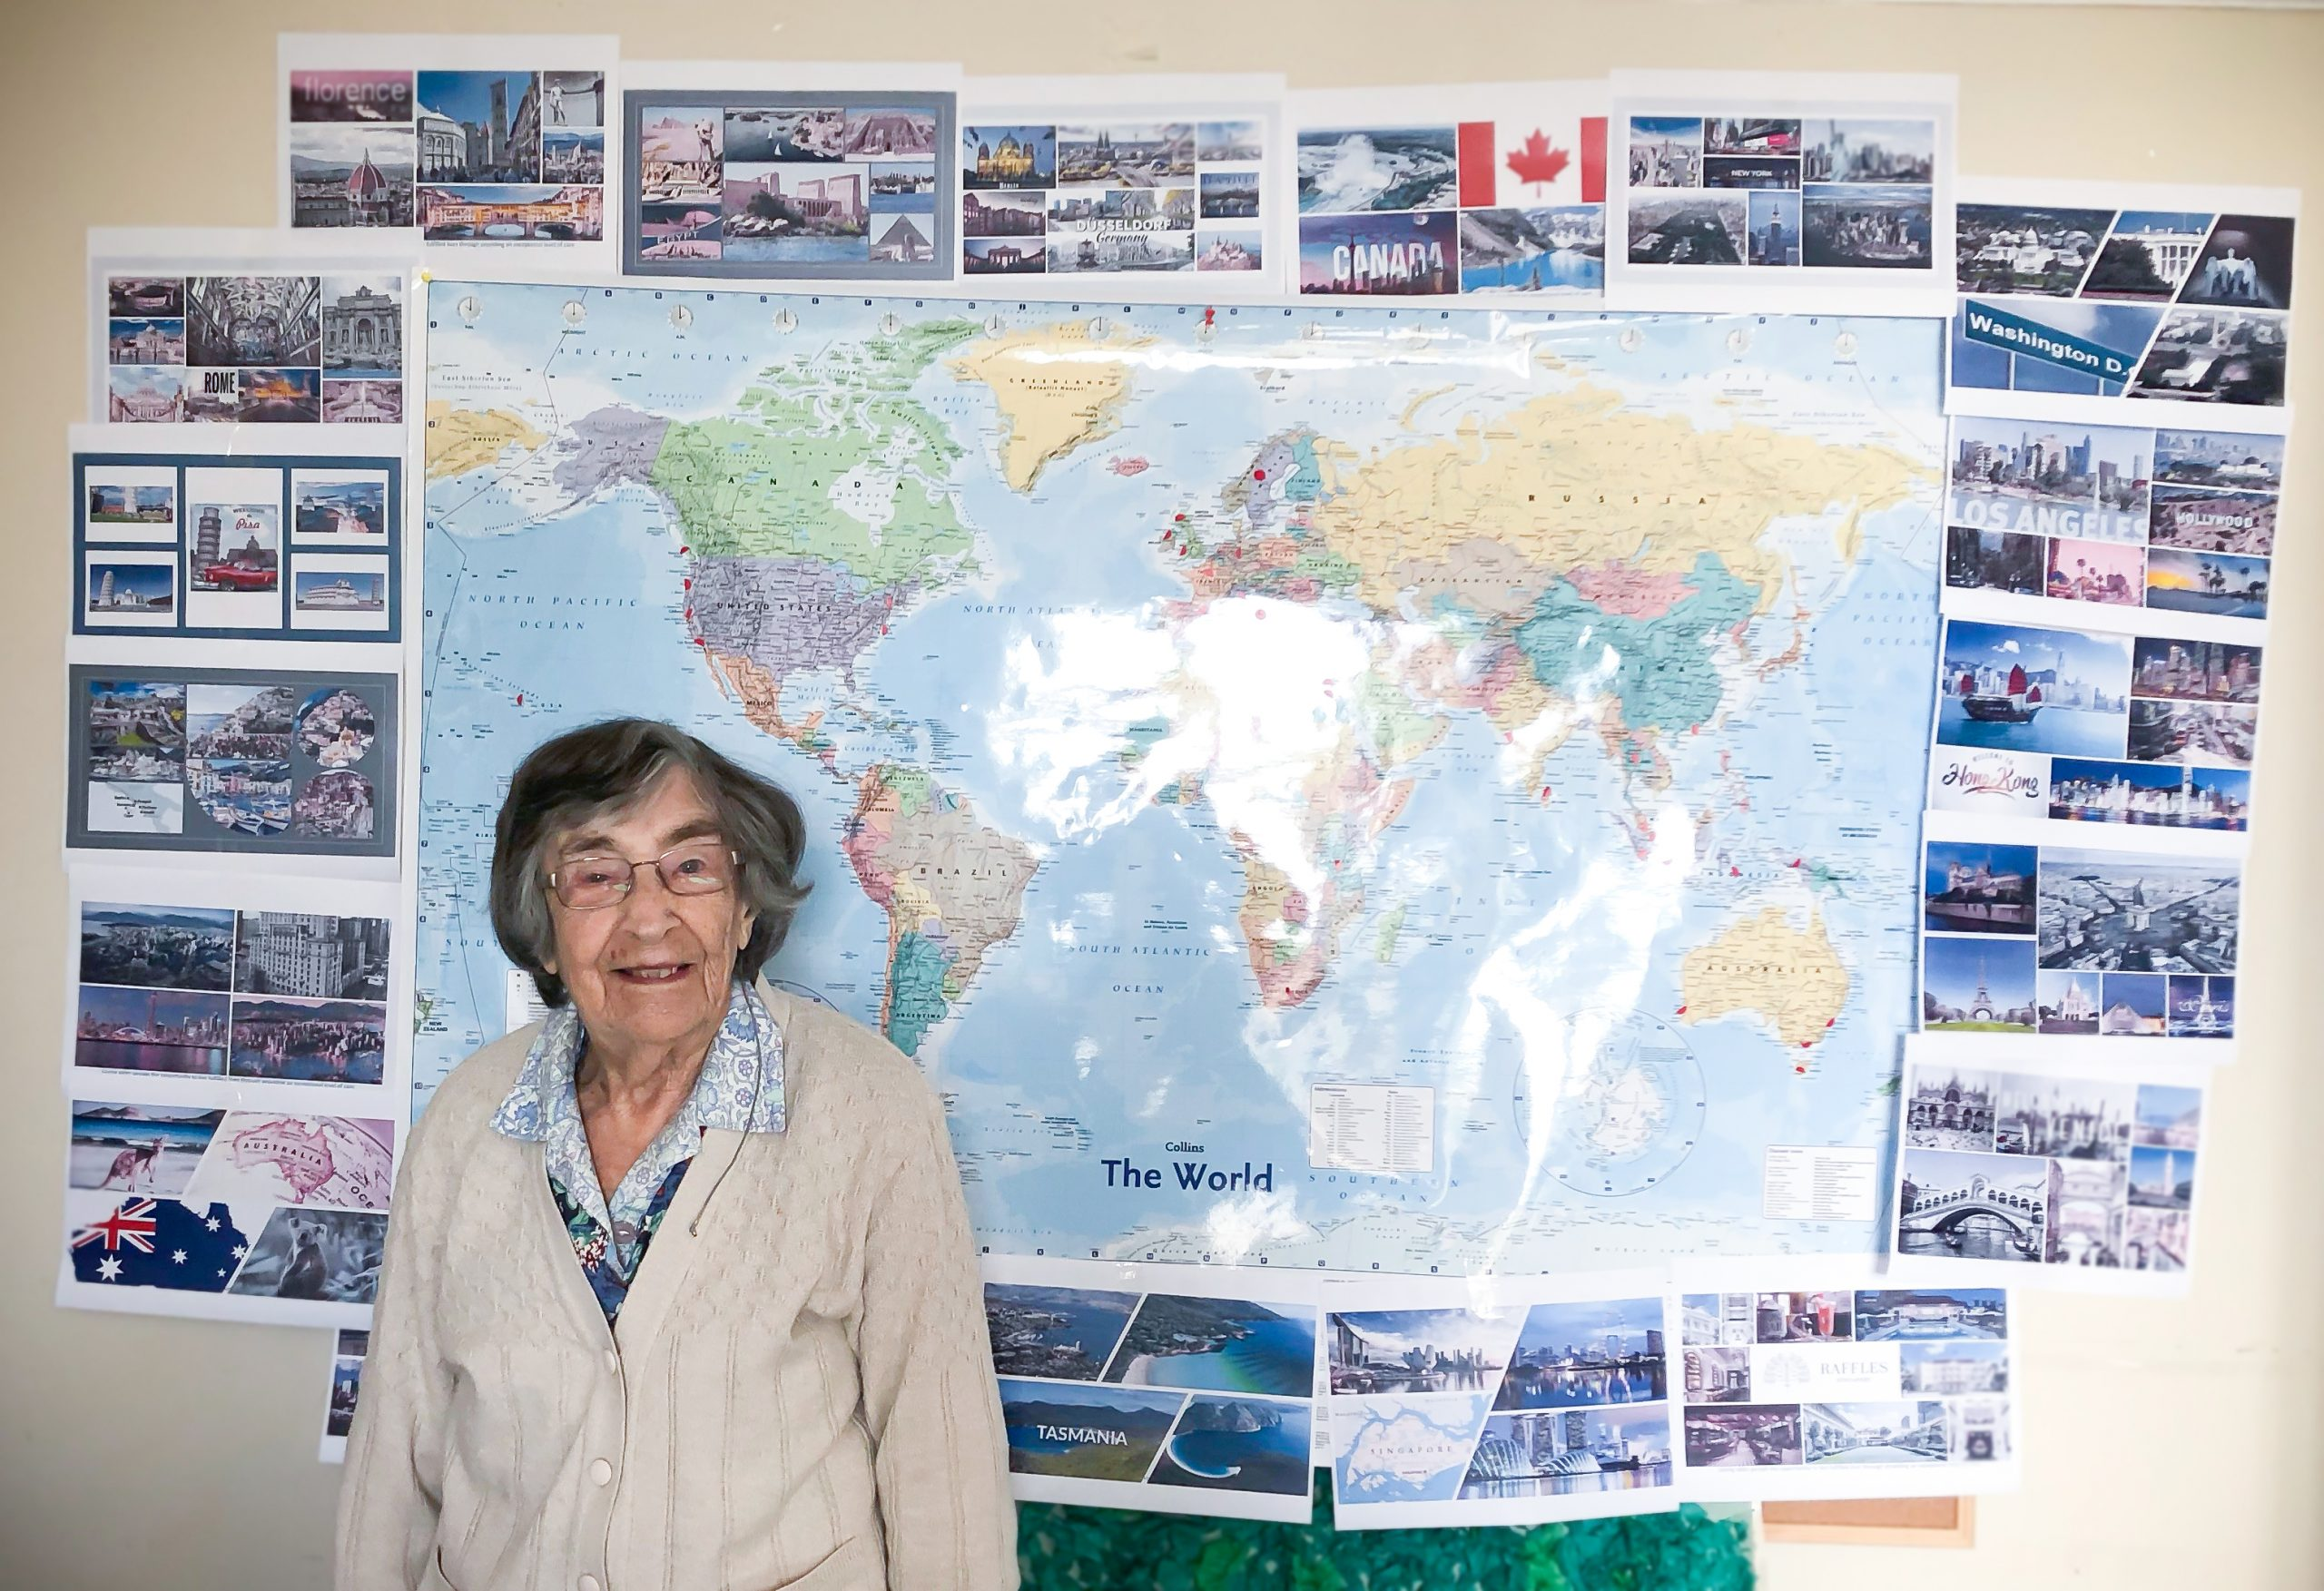 Evelyn standing in front of a world map and images of places she and John visited